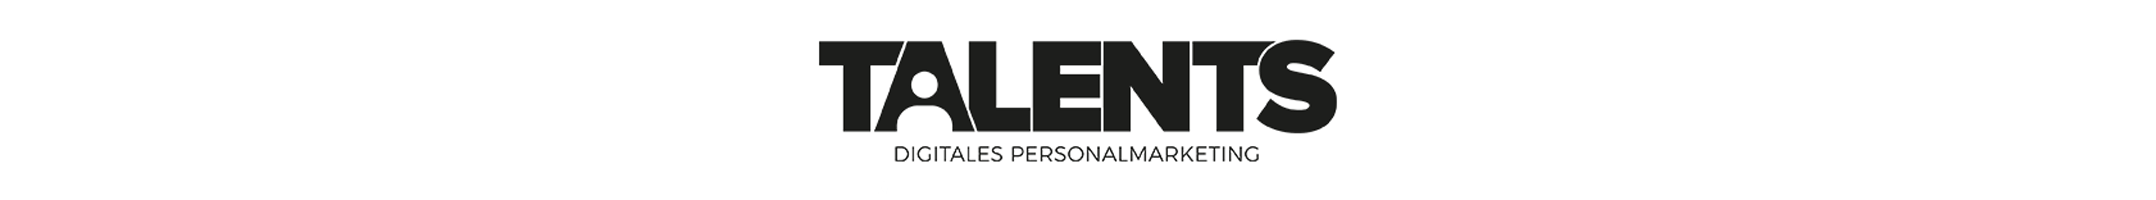 TALENTS Personalmarketing Agentur